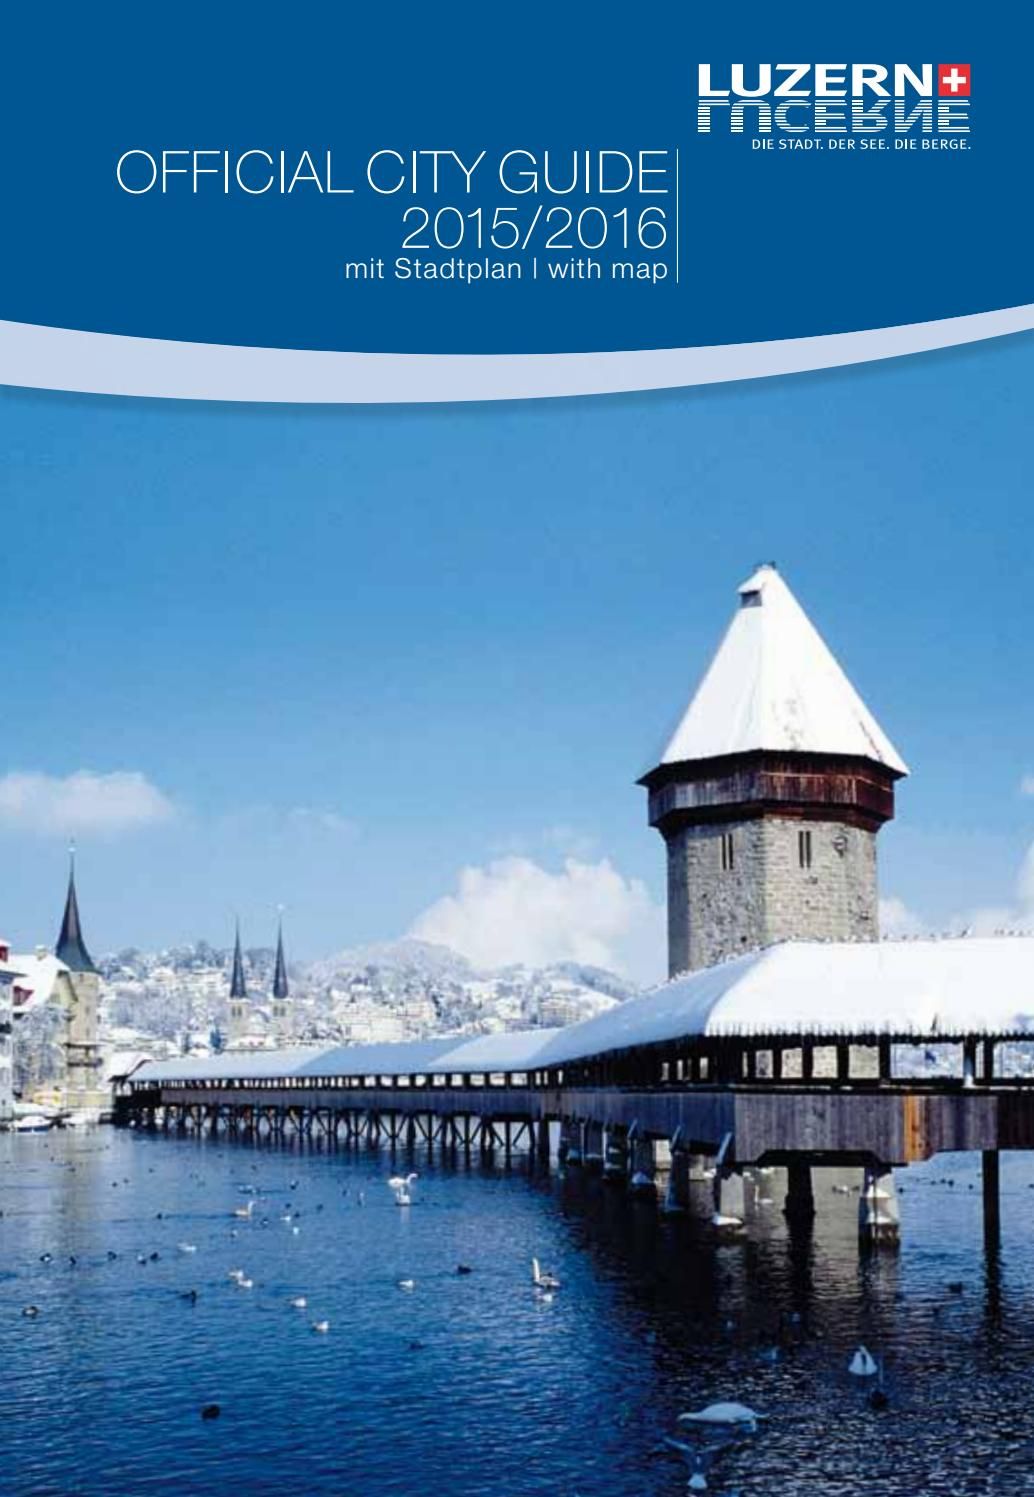 Cityguide 2015 16 Winter Edition By Ba Media Gmbh Issuu